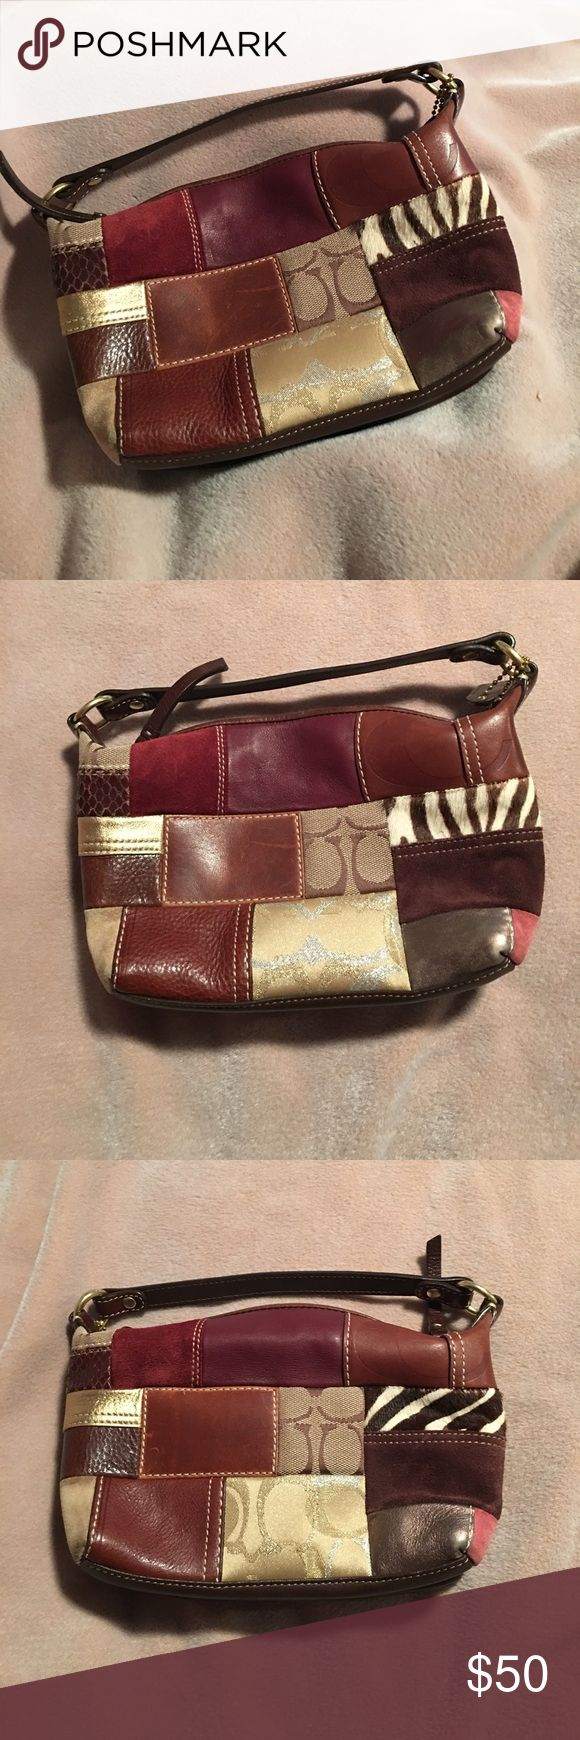 Coach Pocketbook Mini Coach Pocketbook. Very good condition. Different coach patches. Coach Bags Mini Bags